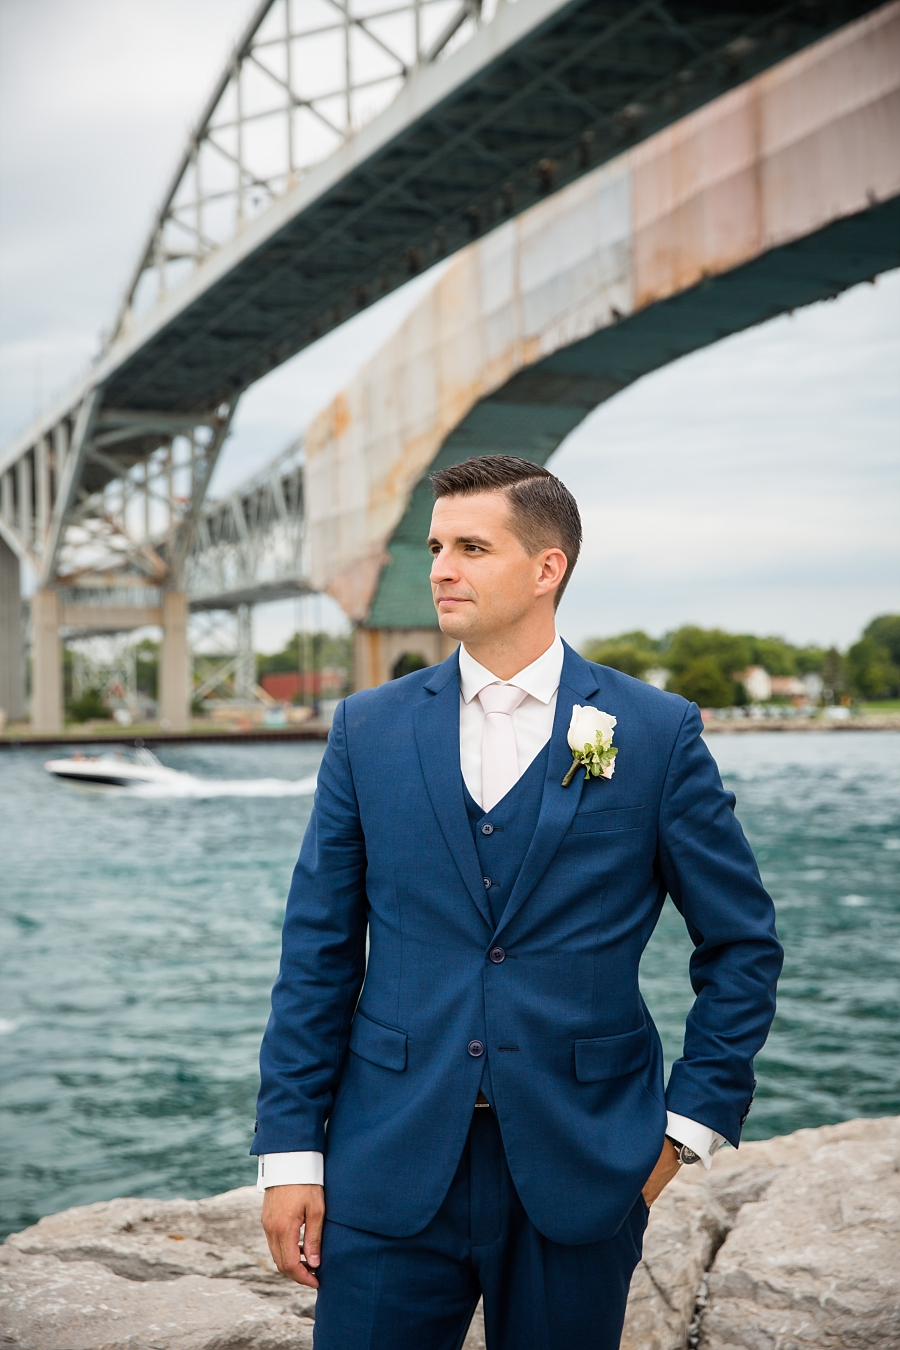 Stacy-Anderson-Photography-Sarnia-Toronto-Ontario-Wedding-Photographer_0031.jpg